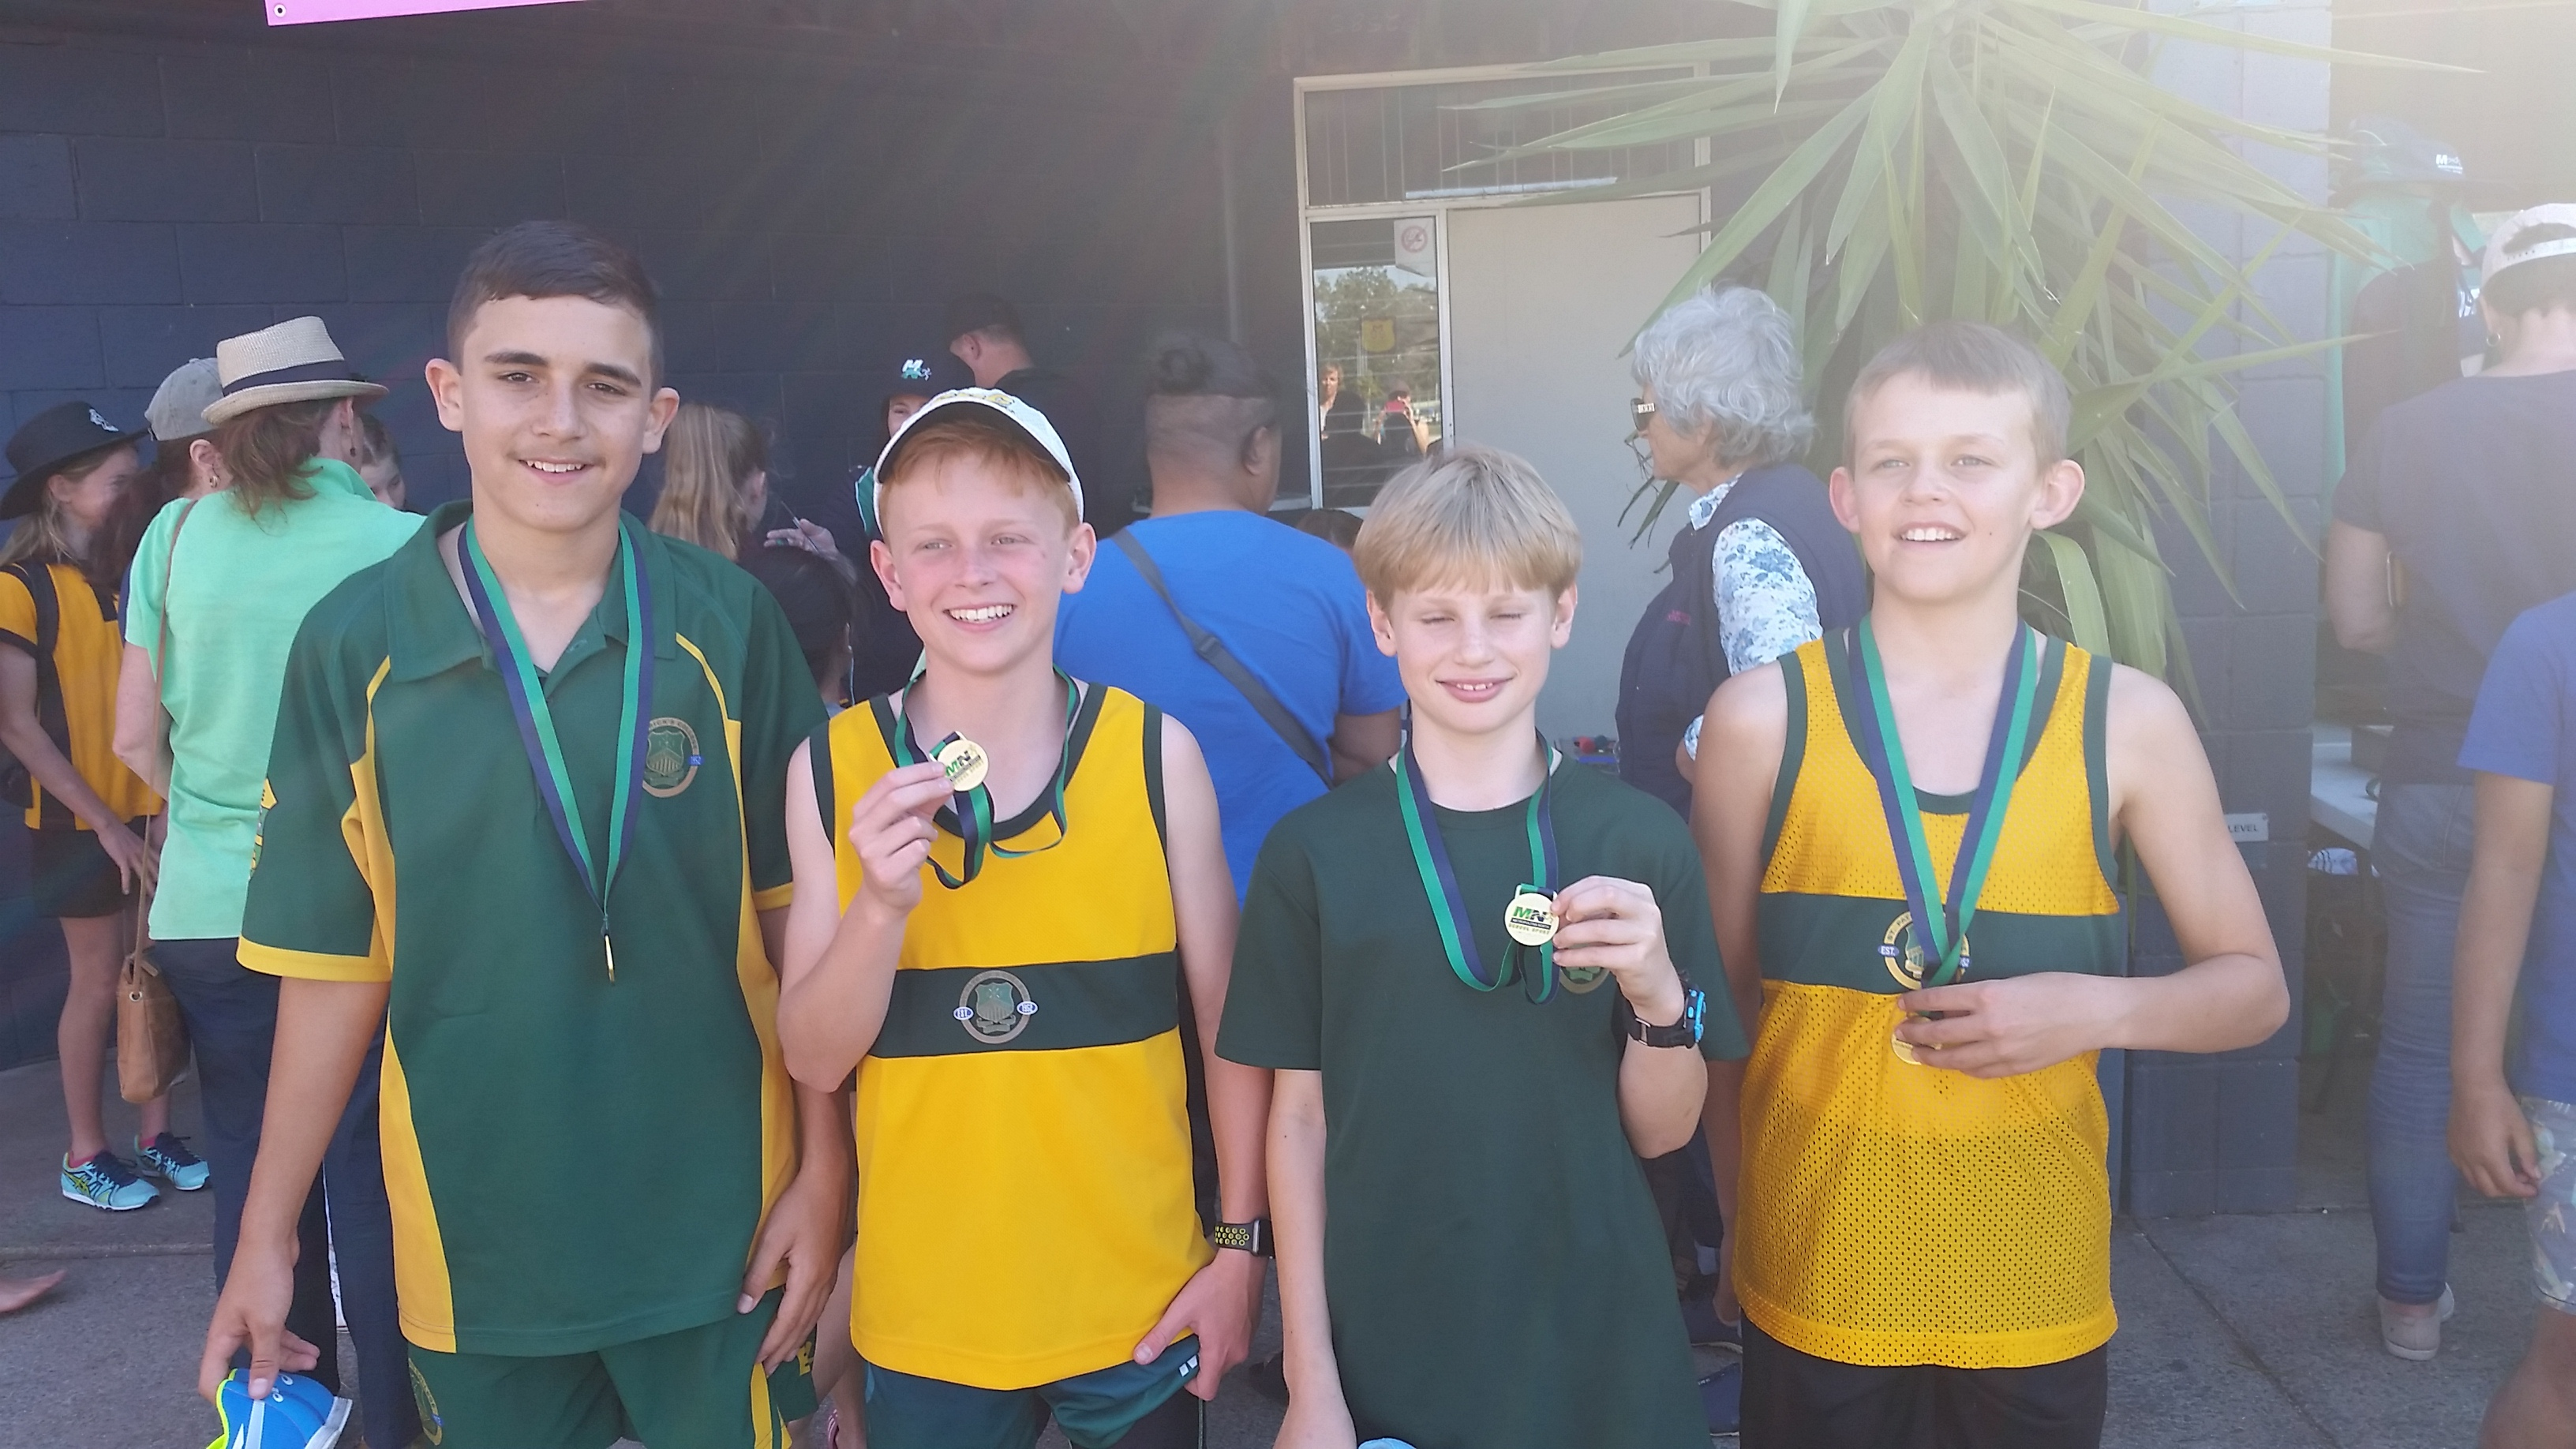 Winning-12-yrs-relay-team-002.jpg?mtime=